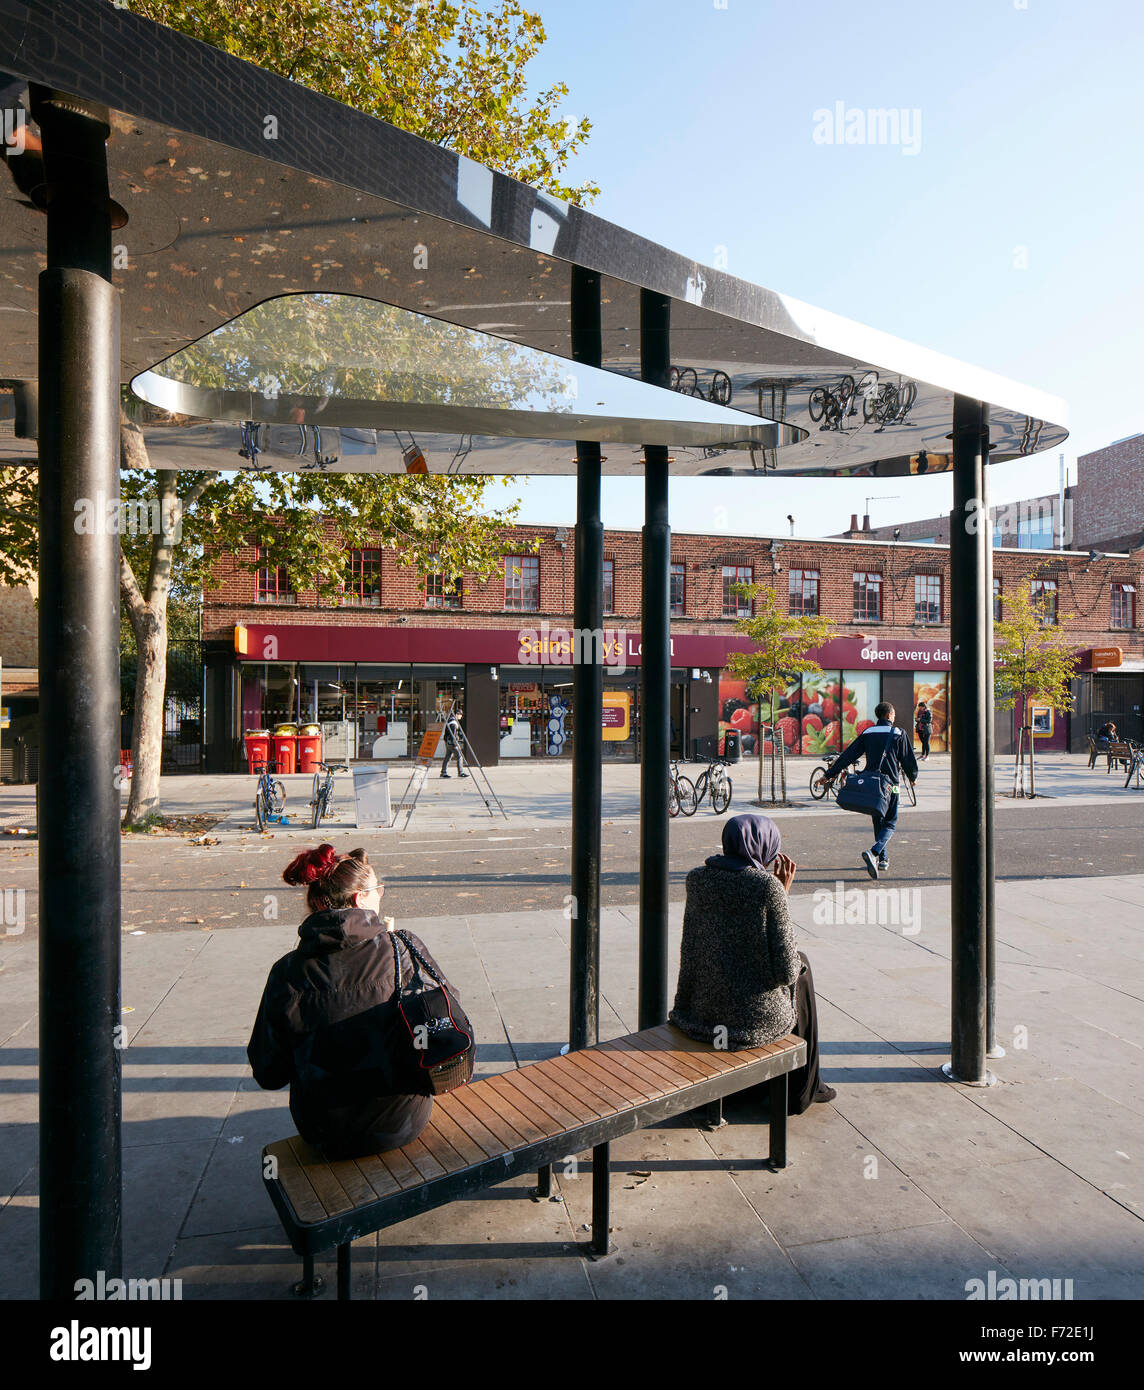 Bus shelter with bench and morning light. Binfield Road Bus Shelter, Stockwell Framework Masterplan, London, United - Stock Image